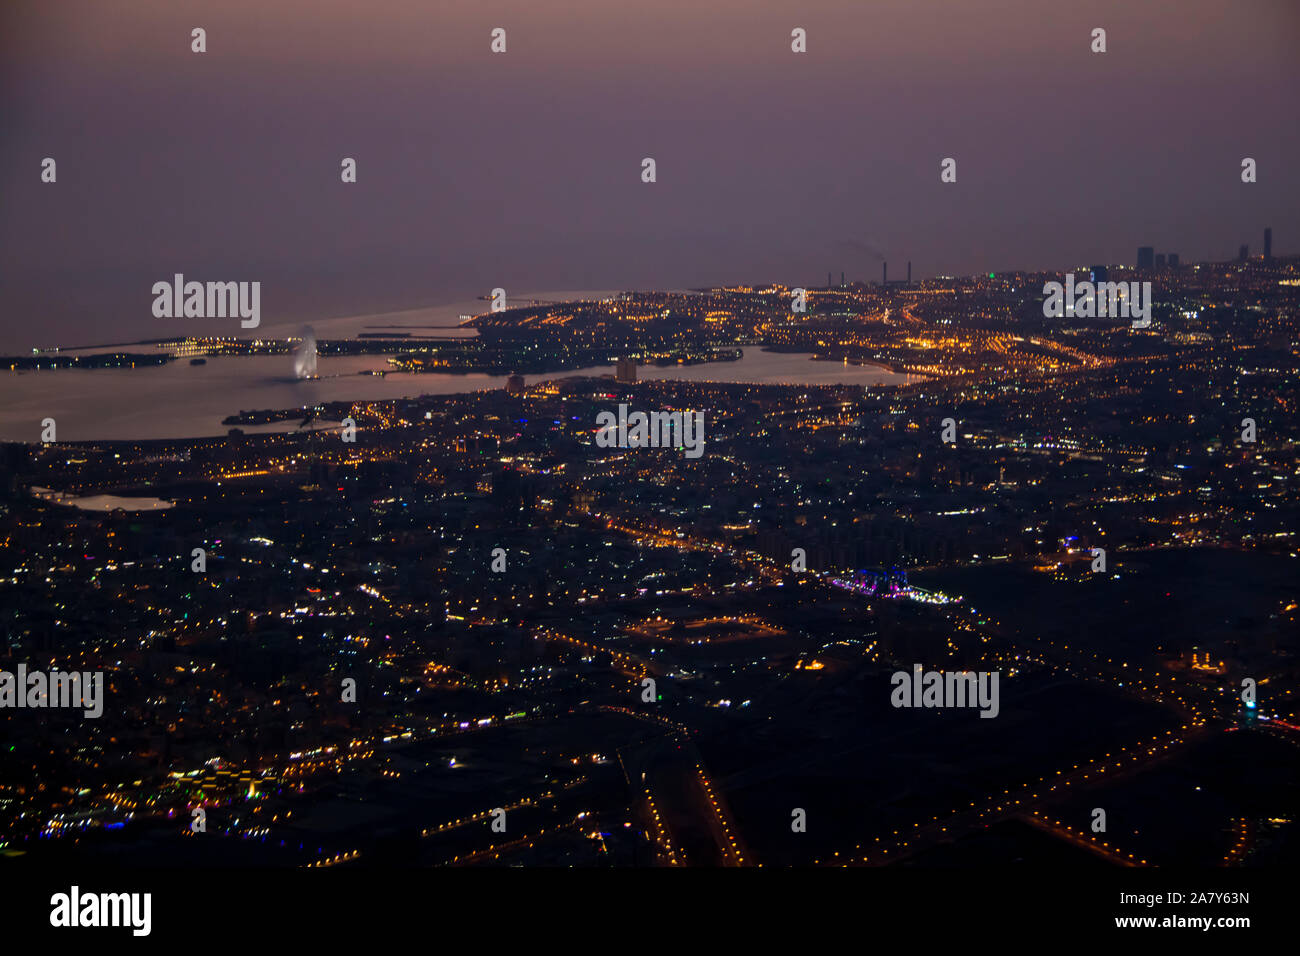 Mecca Aerial High Resolution Stock Photography And Images Alamy